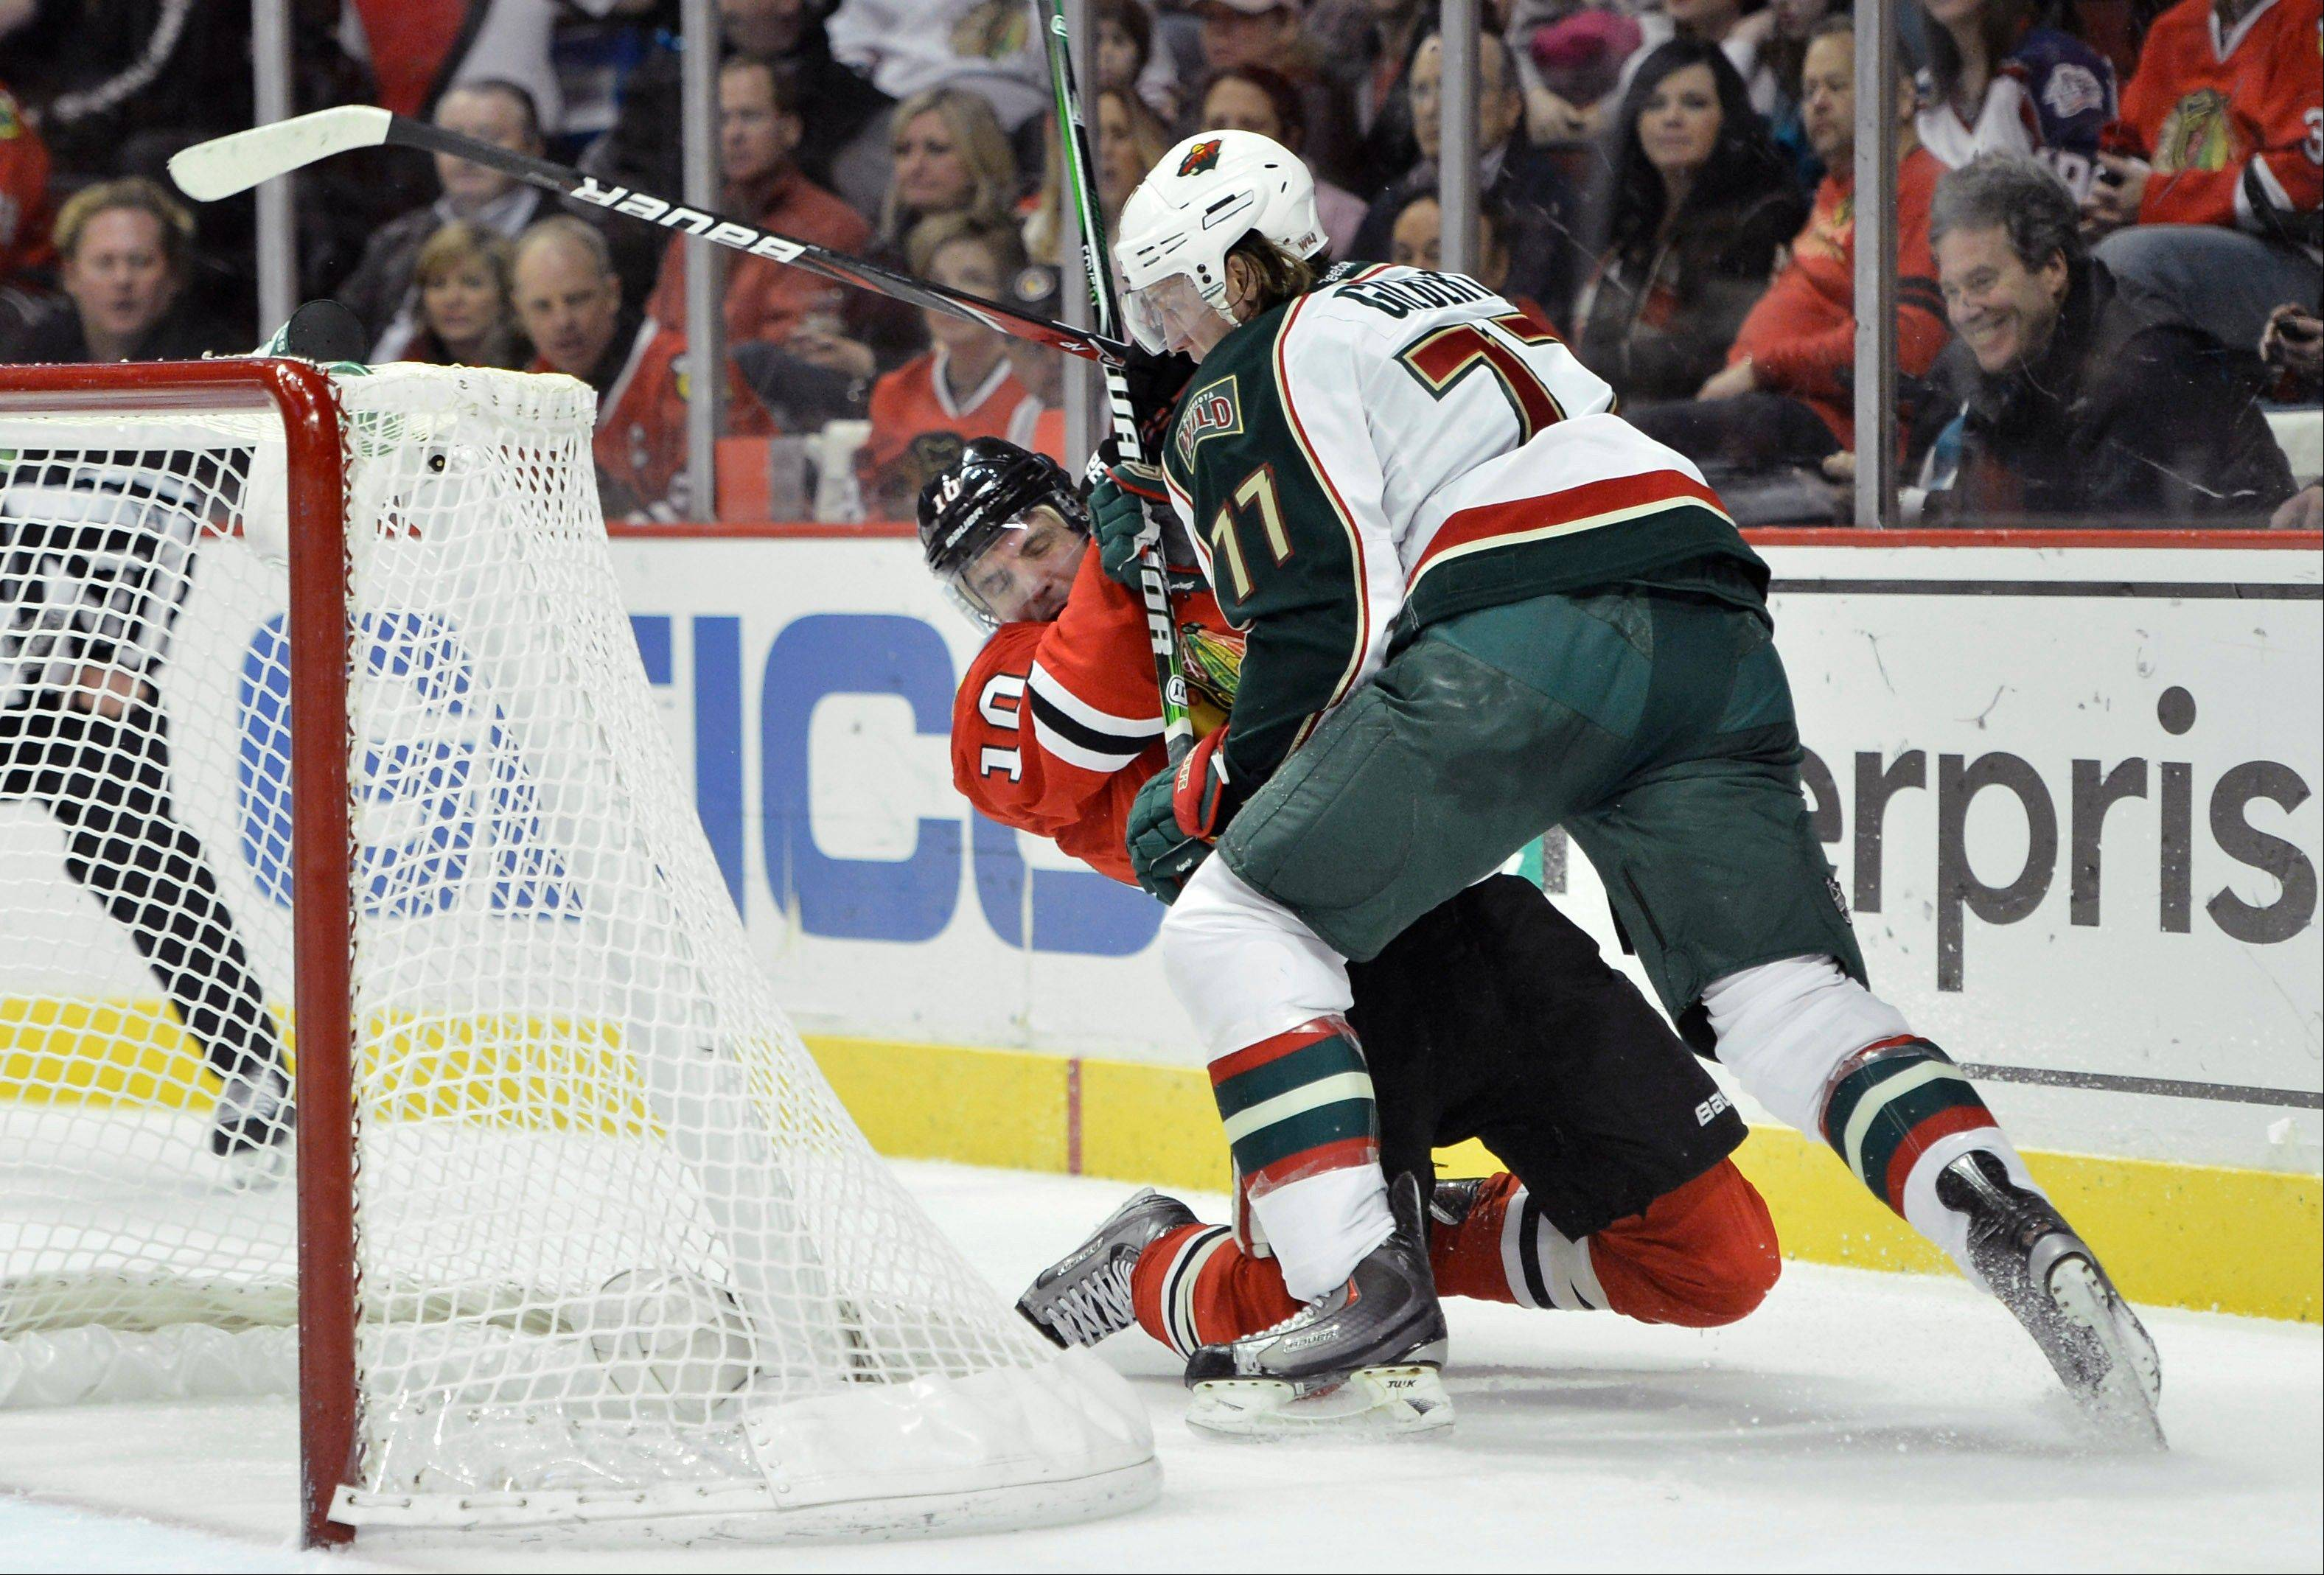 Minnesota Wild defenseman Tom Gilbert, right, takes down Blackhawks left wing Patrick Sharp during the second period of Tuesday night's game. Now the rumor is Sharp could be out for three weeks.